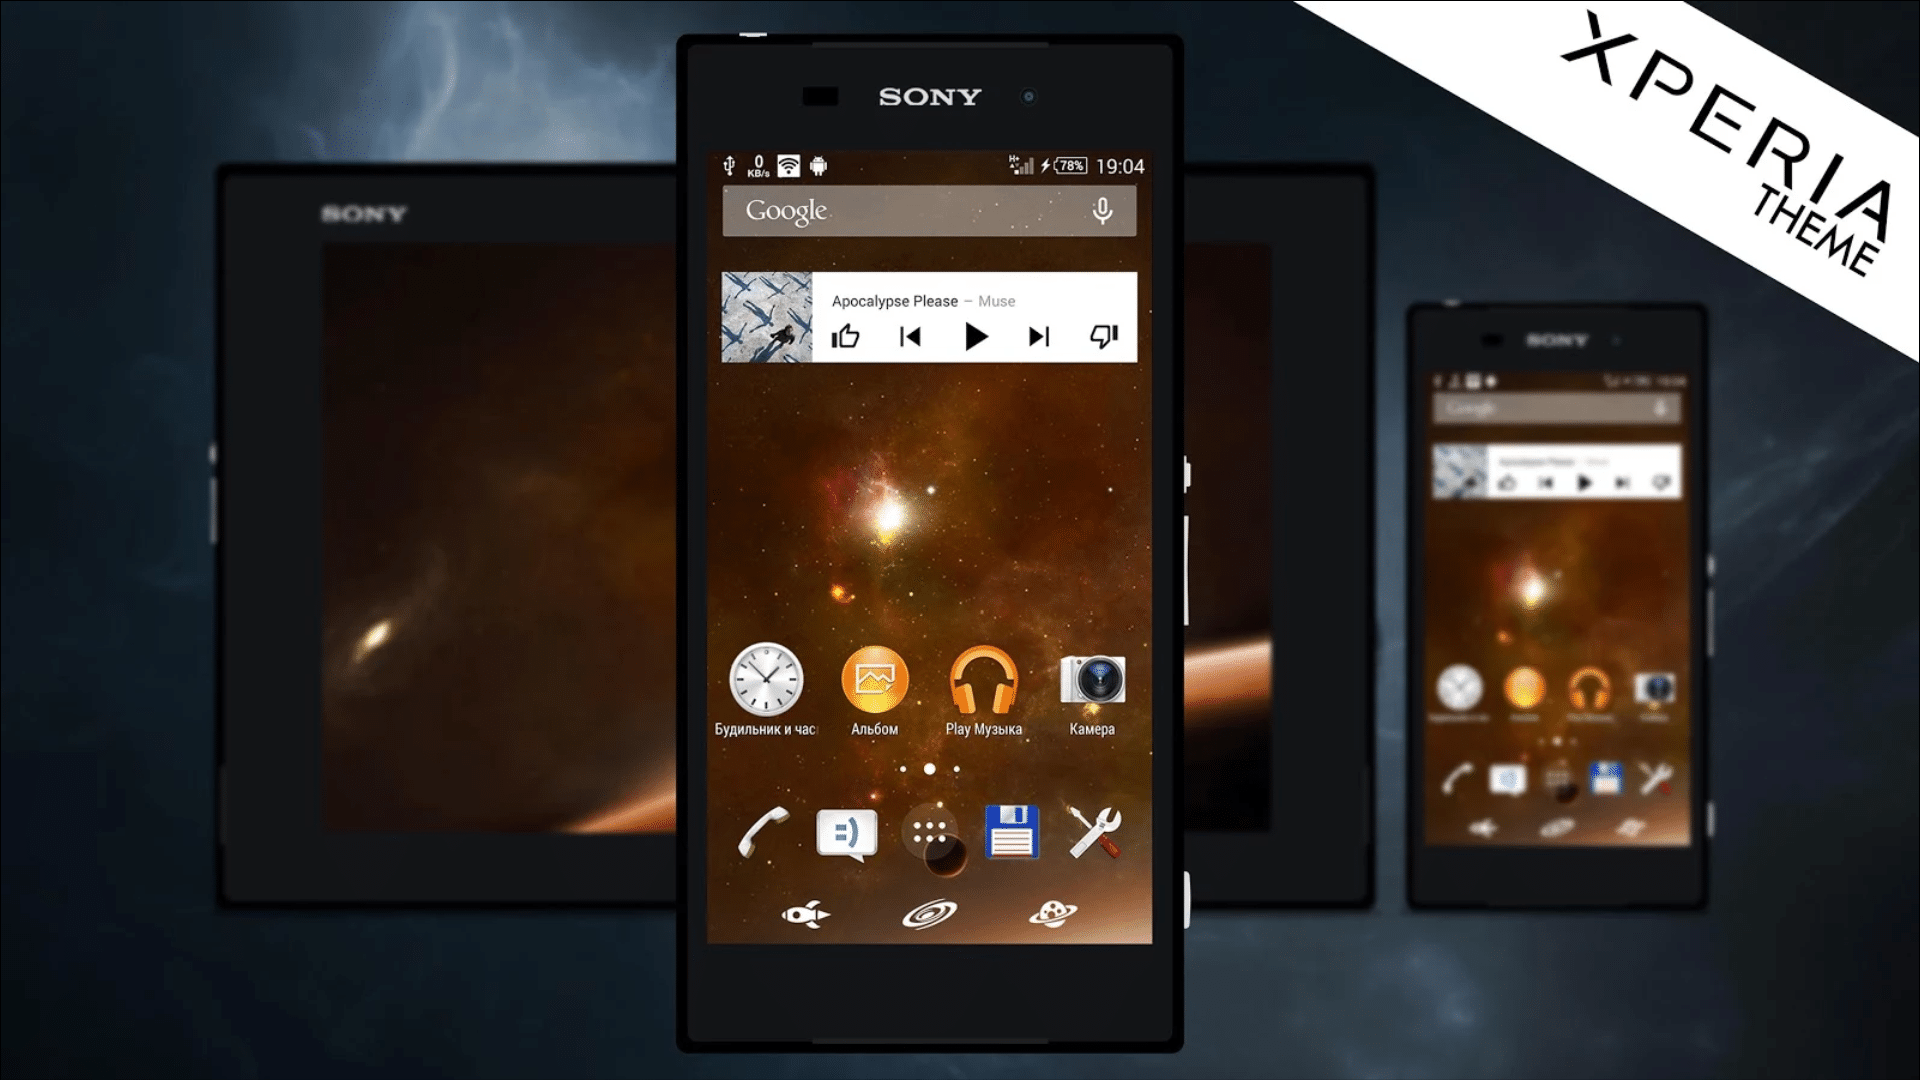 Xperia Interstellar Theme